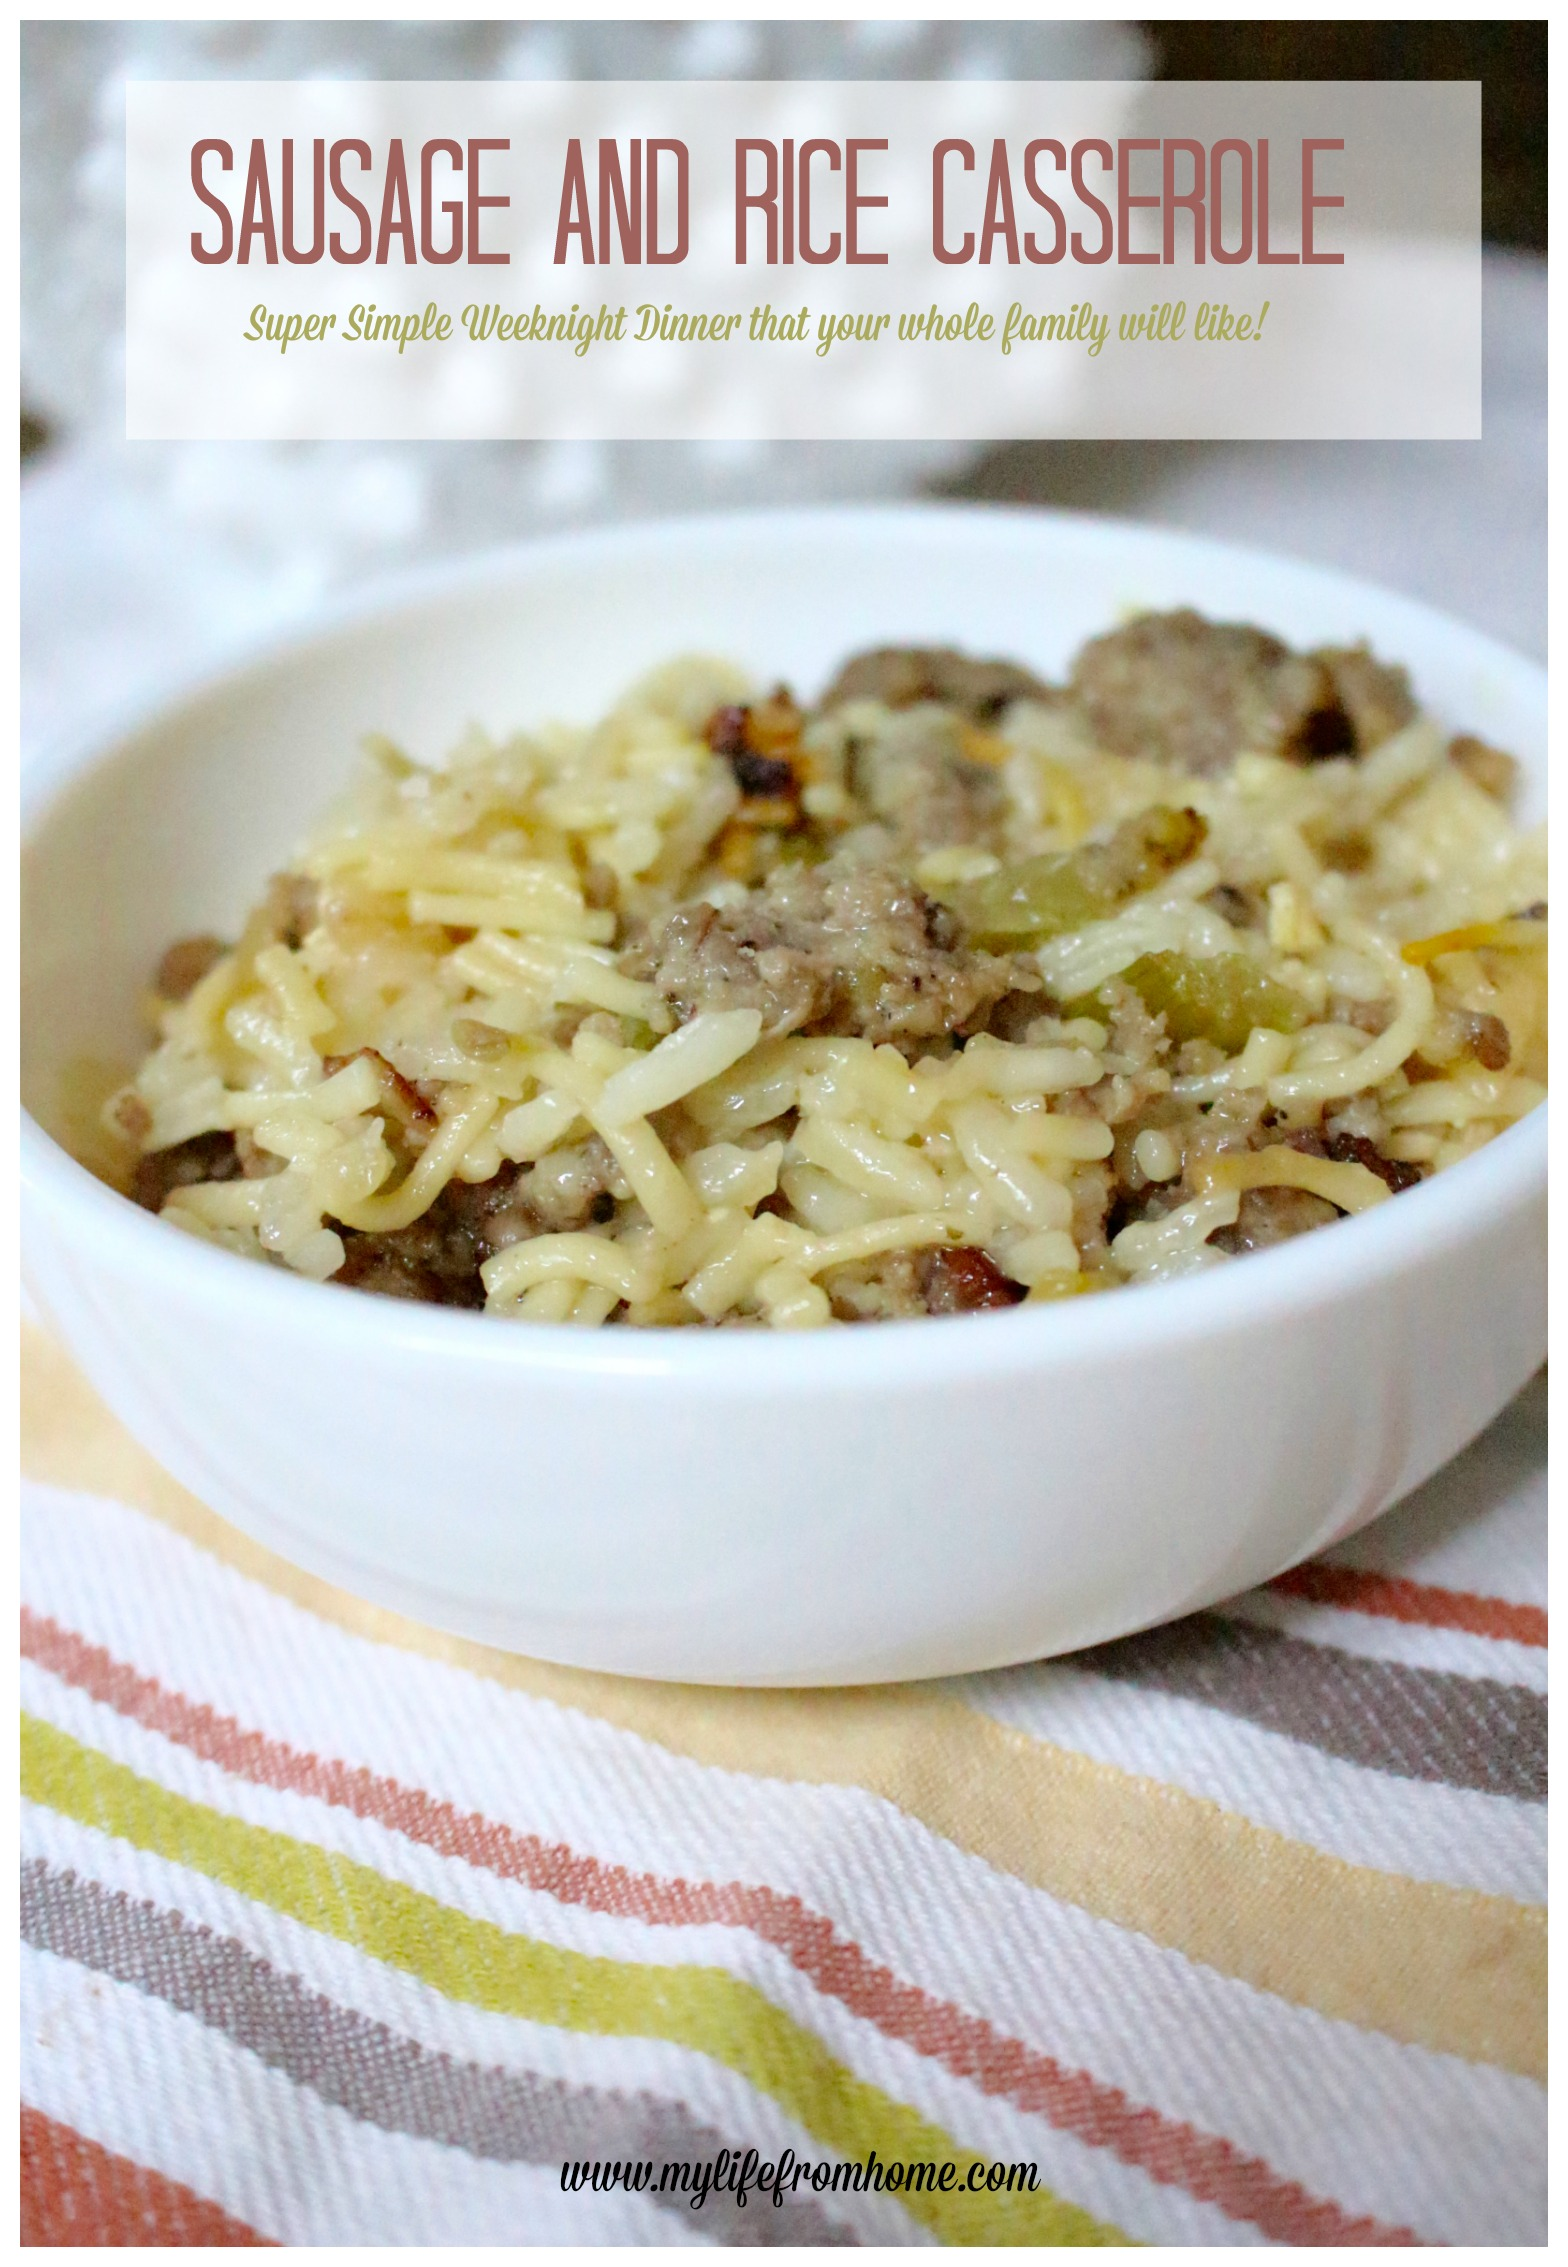 Sausage and Rice Casserole Recipe by www.mylifefromhome.com